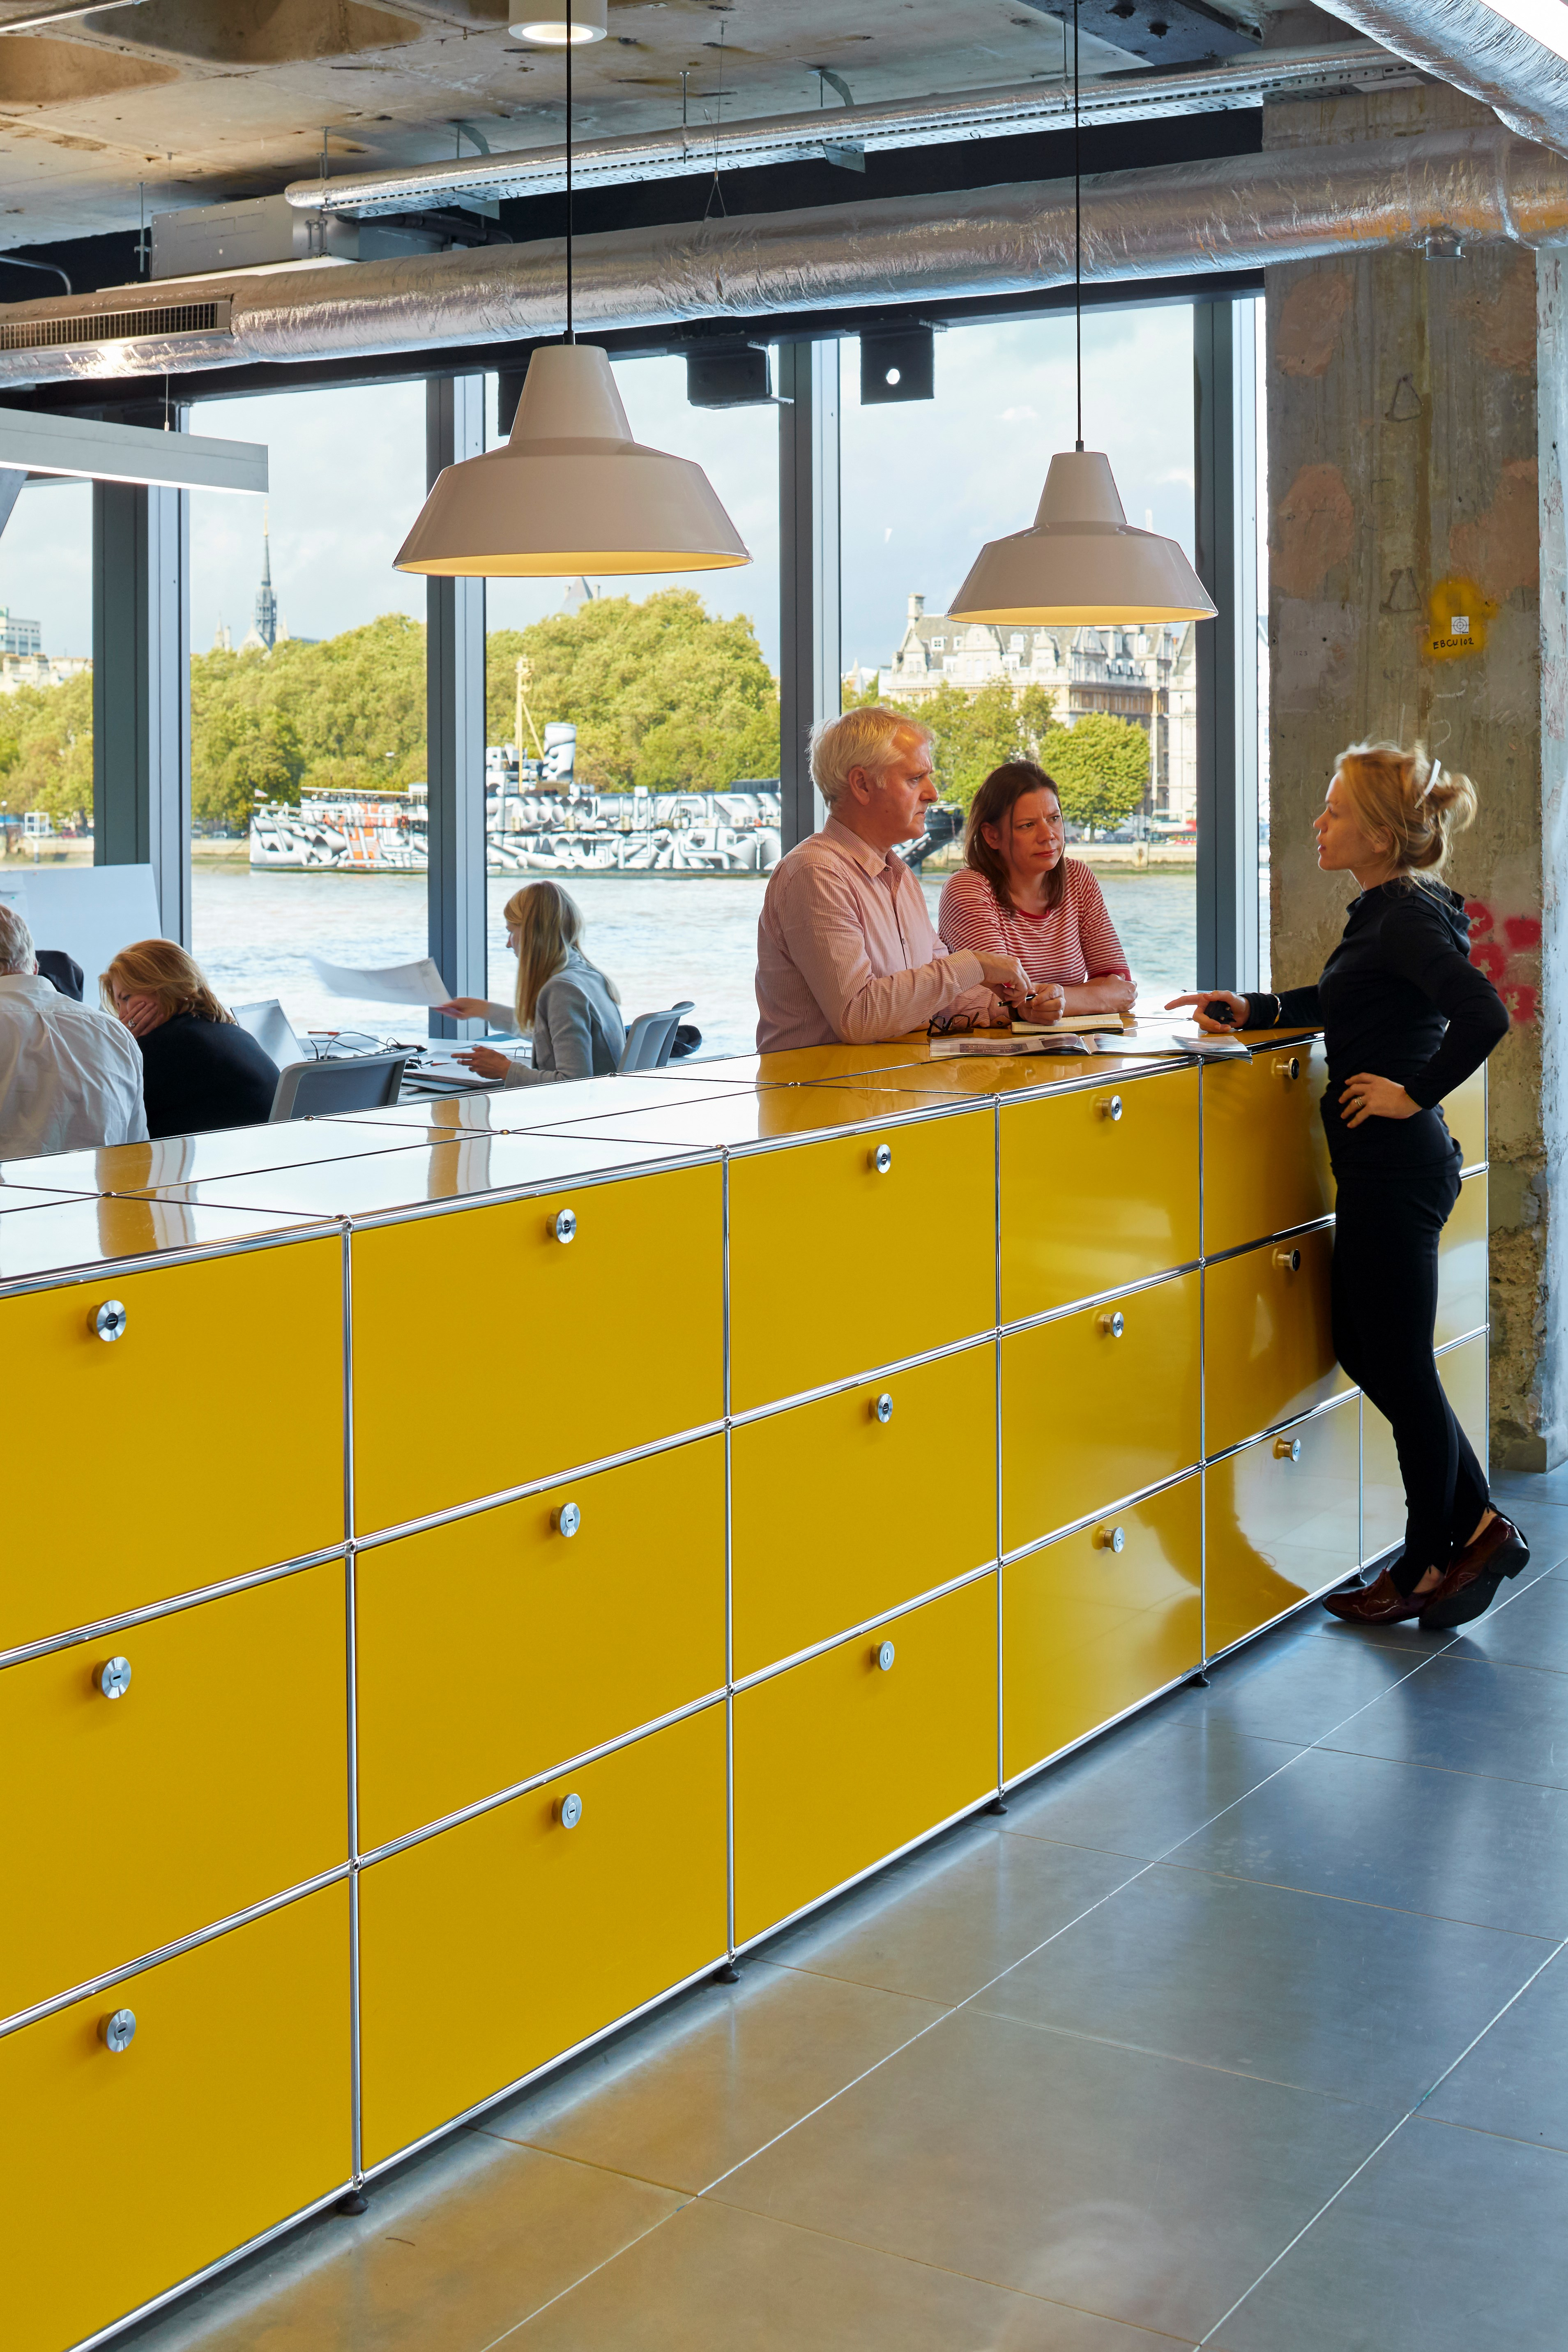 yellow USM Haller solutions with storage cabinets in a office